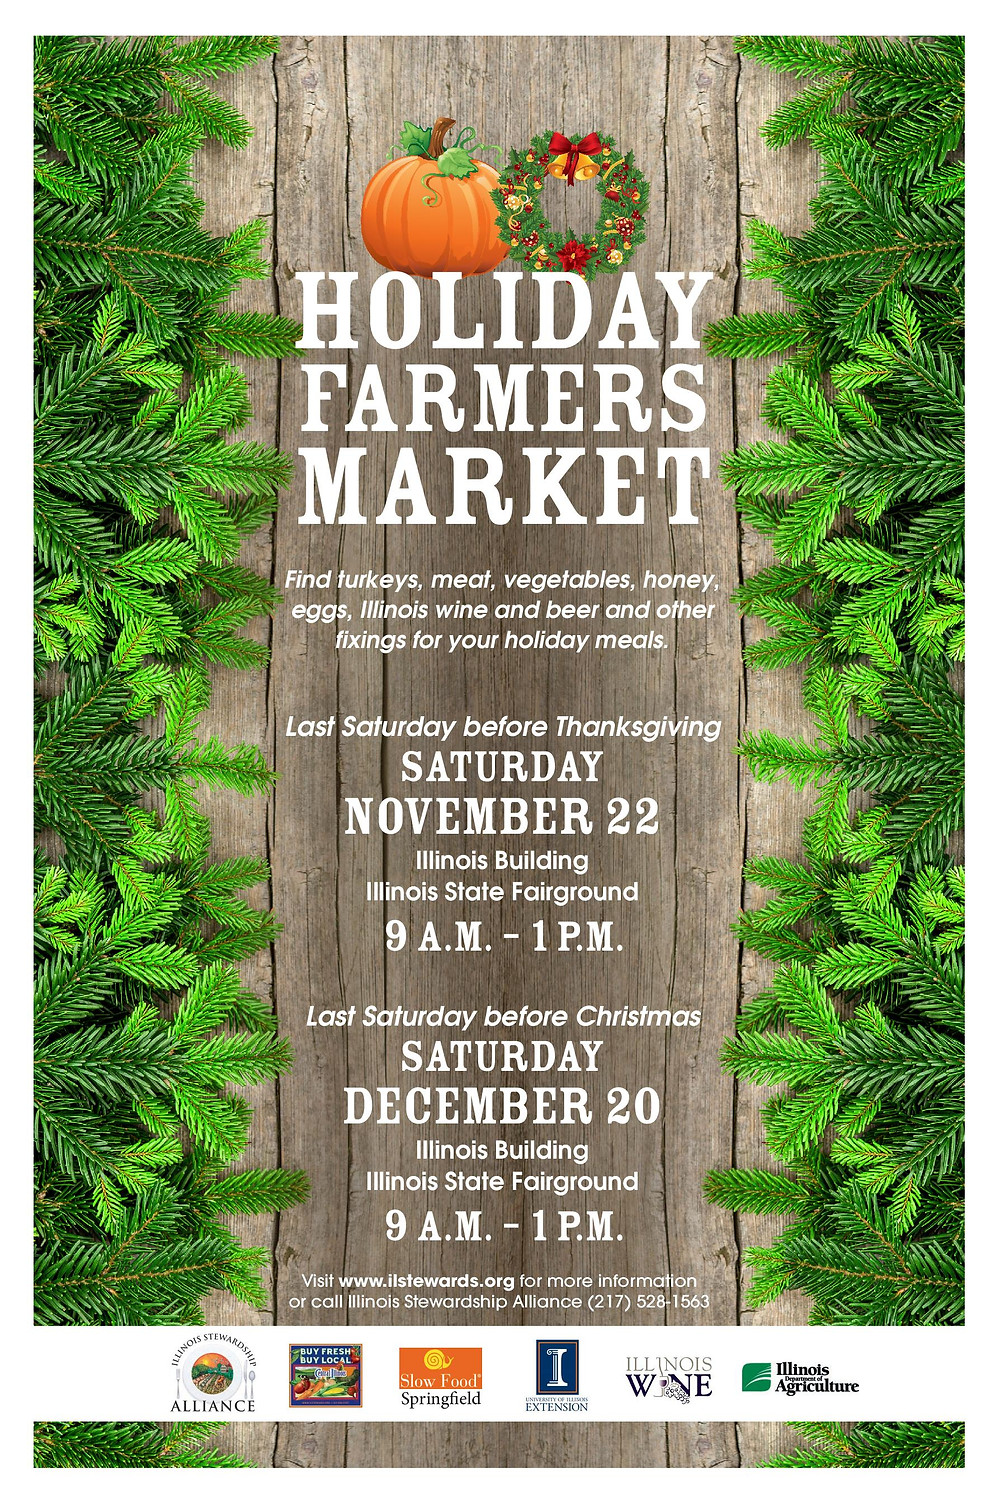 HolidayMarket-Poster_cropped-page-001.jpg